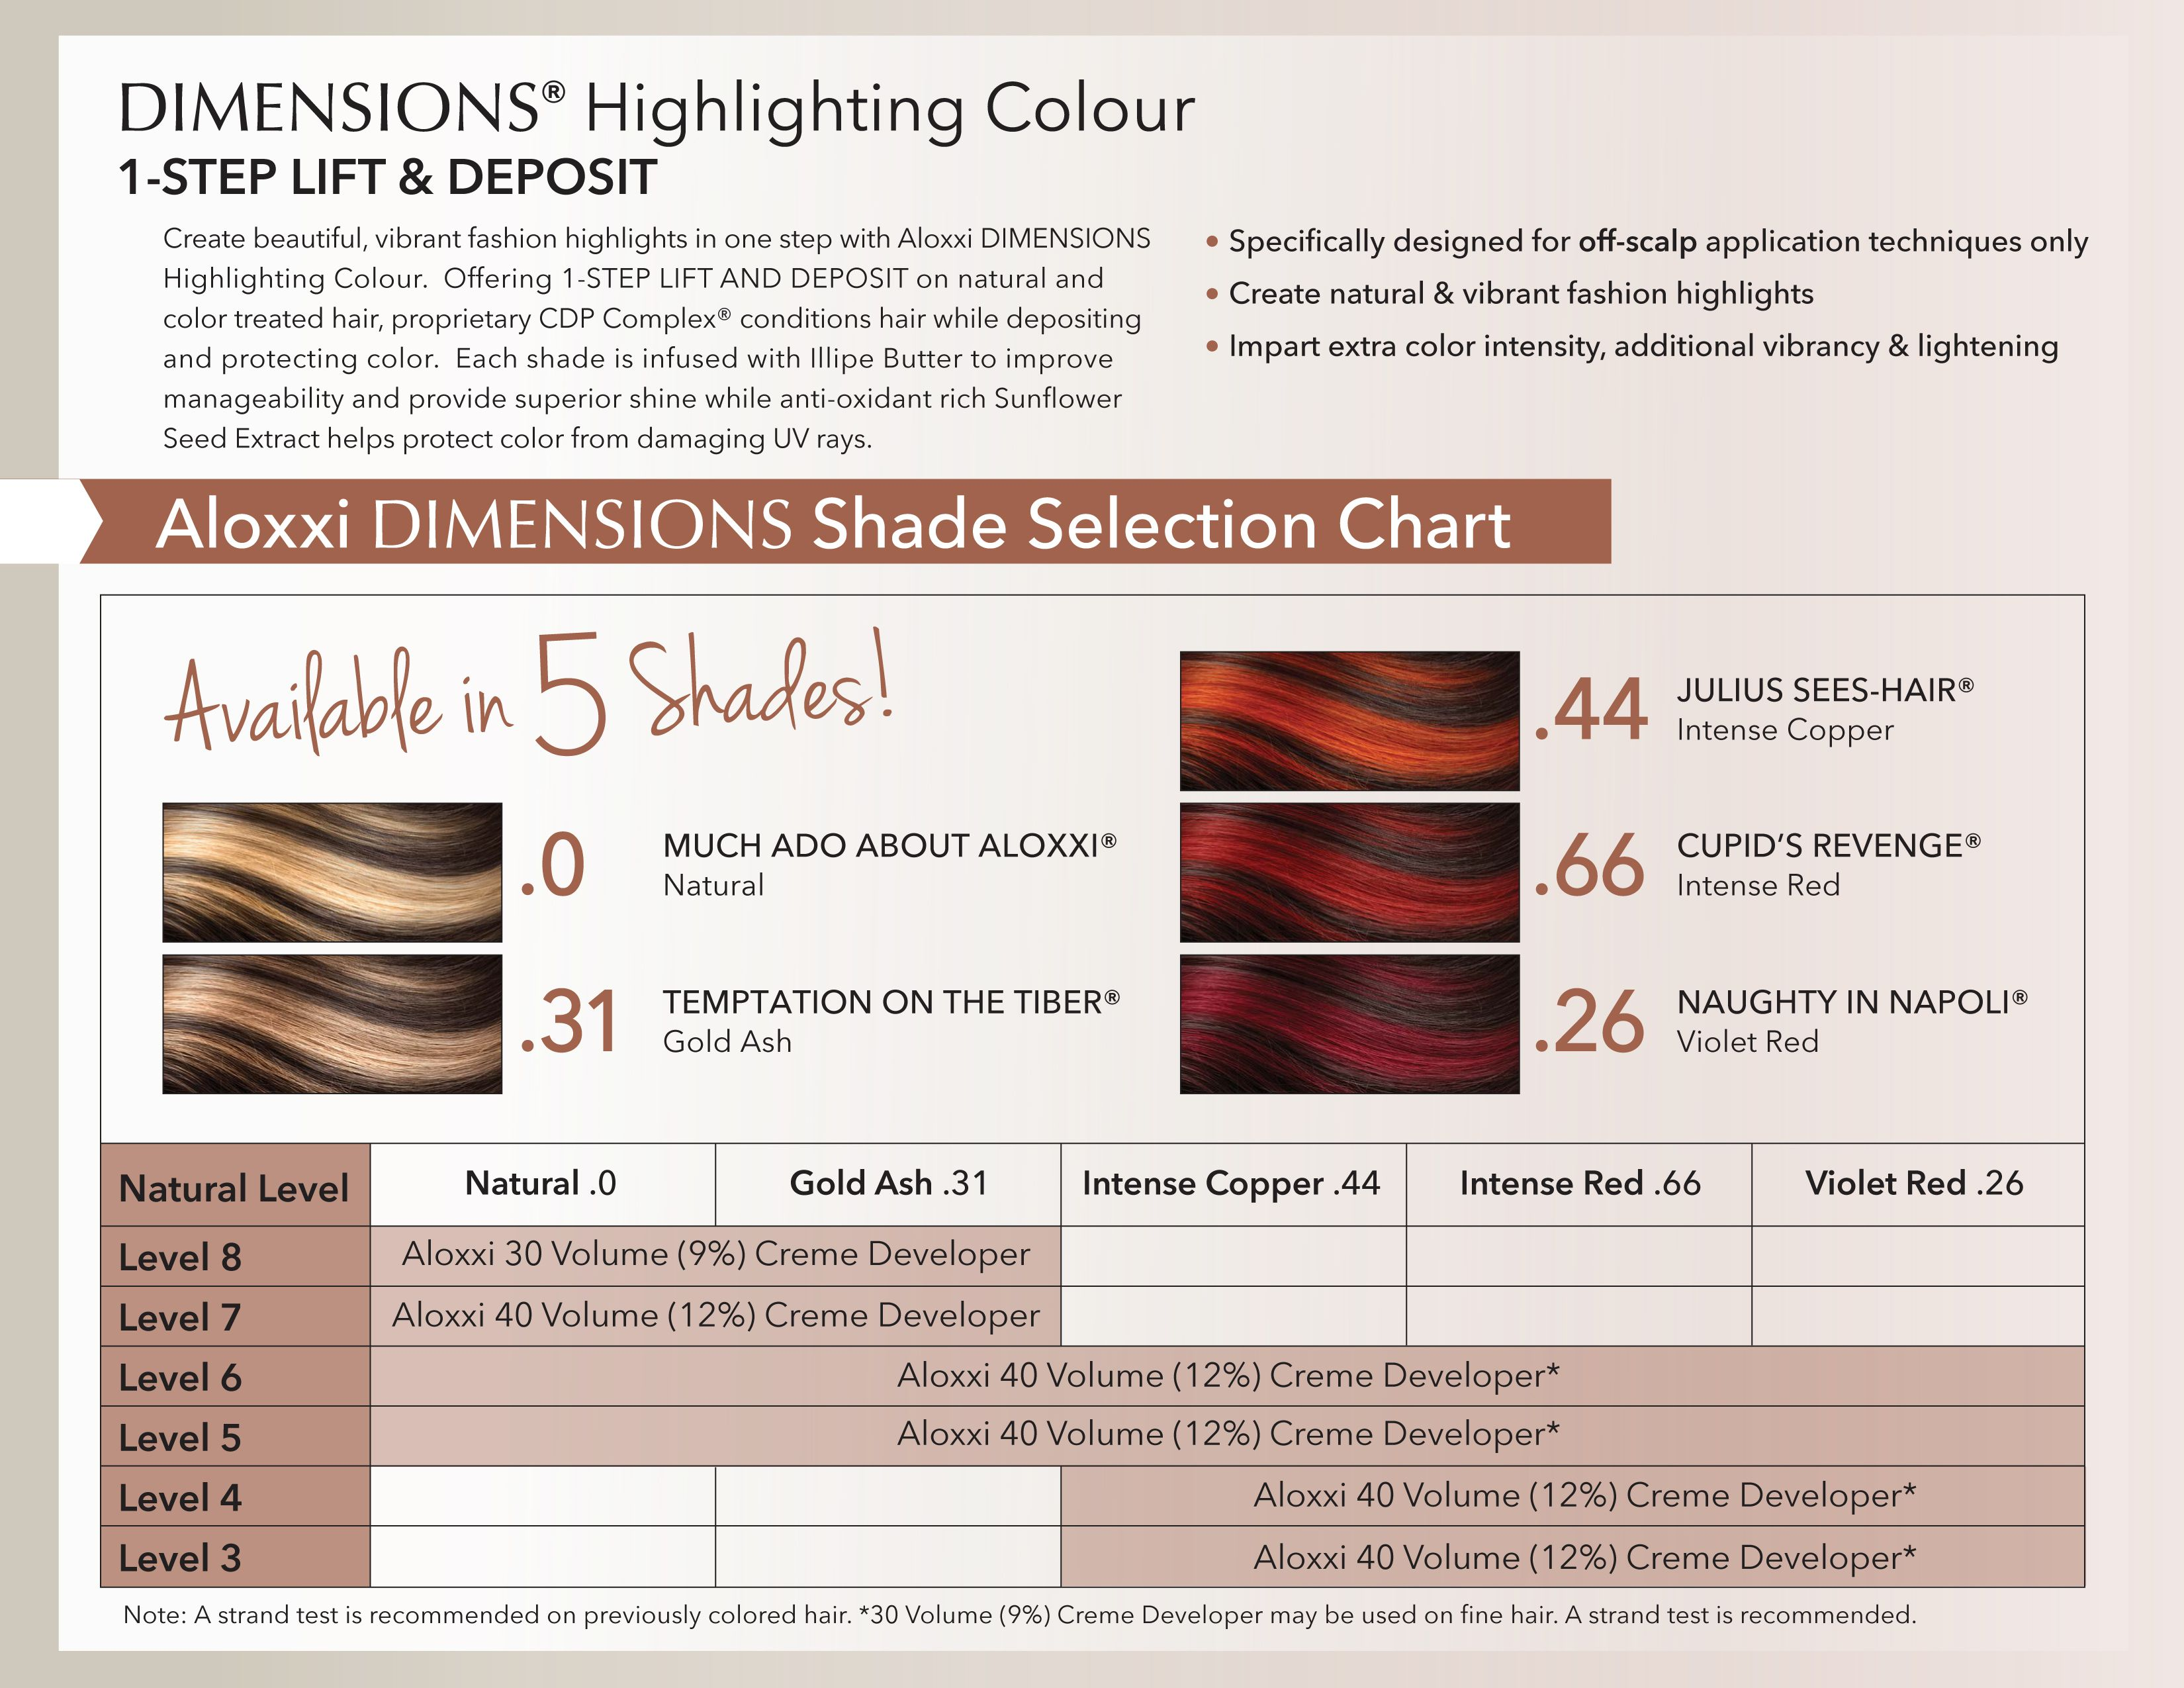 Aloxxi Dimensions Shade Selection Chart Colored Highlights Color Color Treated Hair